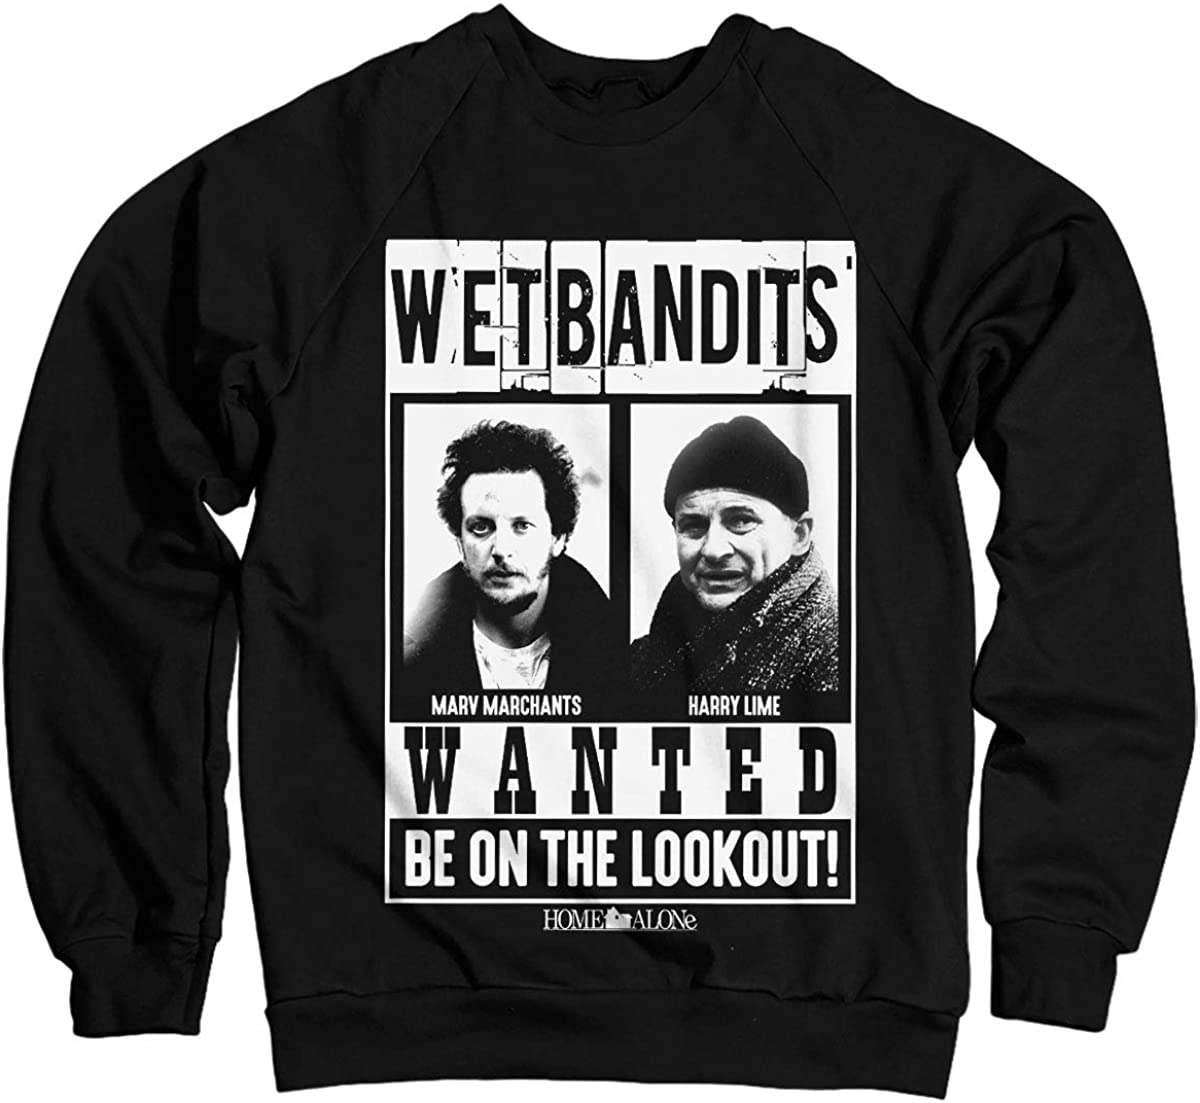 Home Alone Officially Licensed Wet Bandits Sweatshirt (Black)